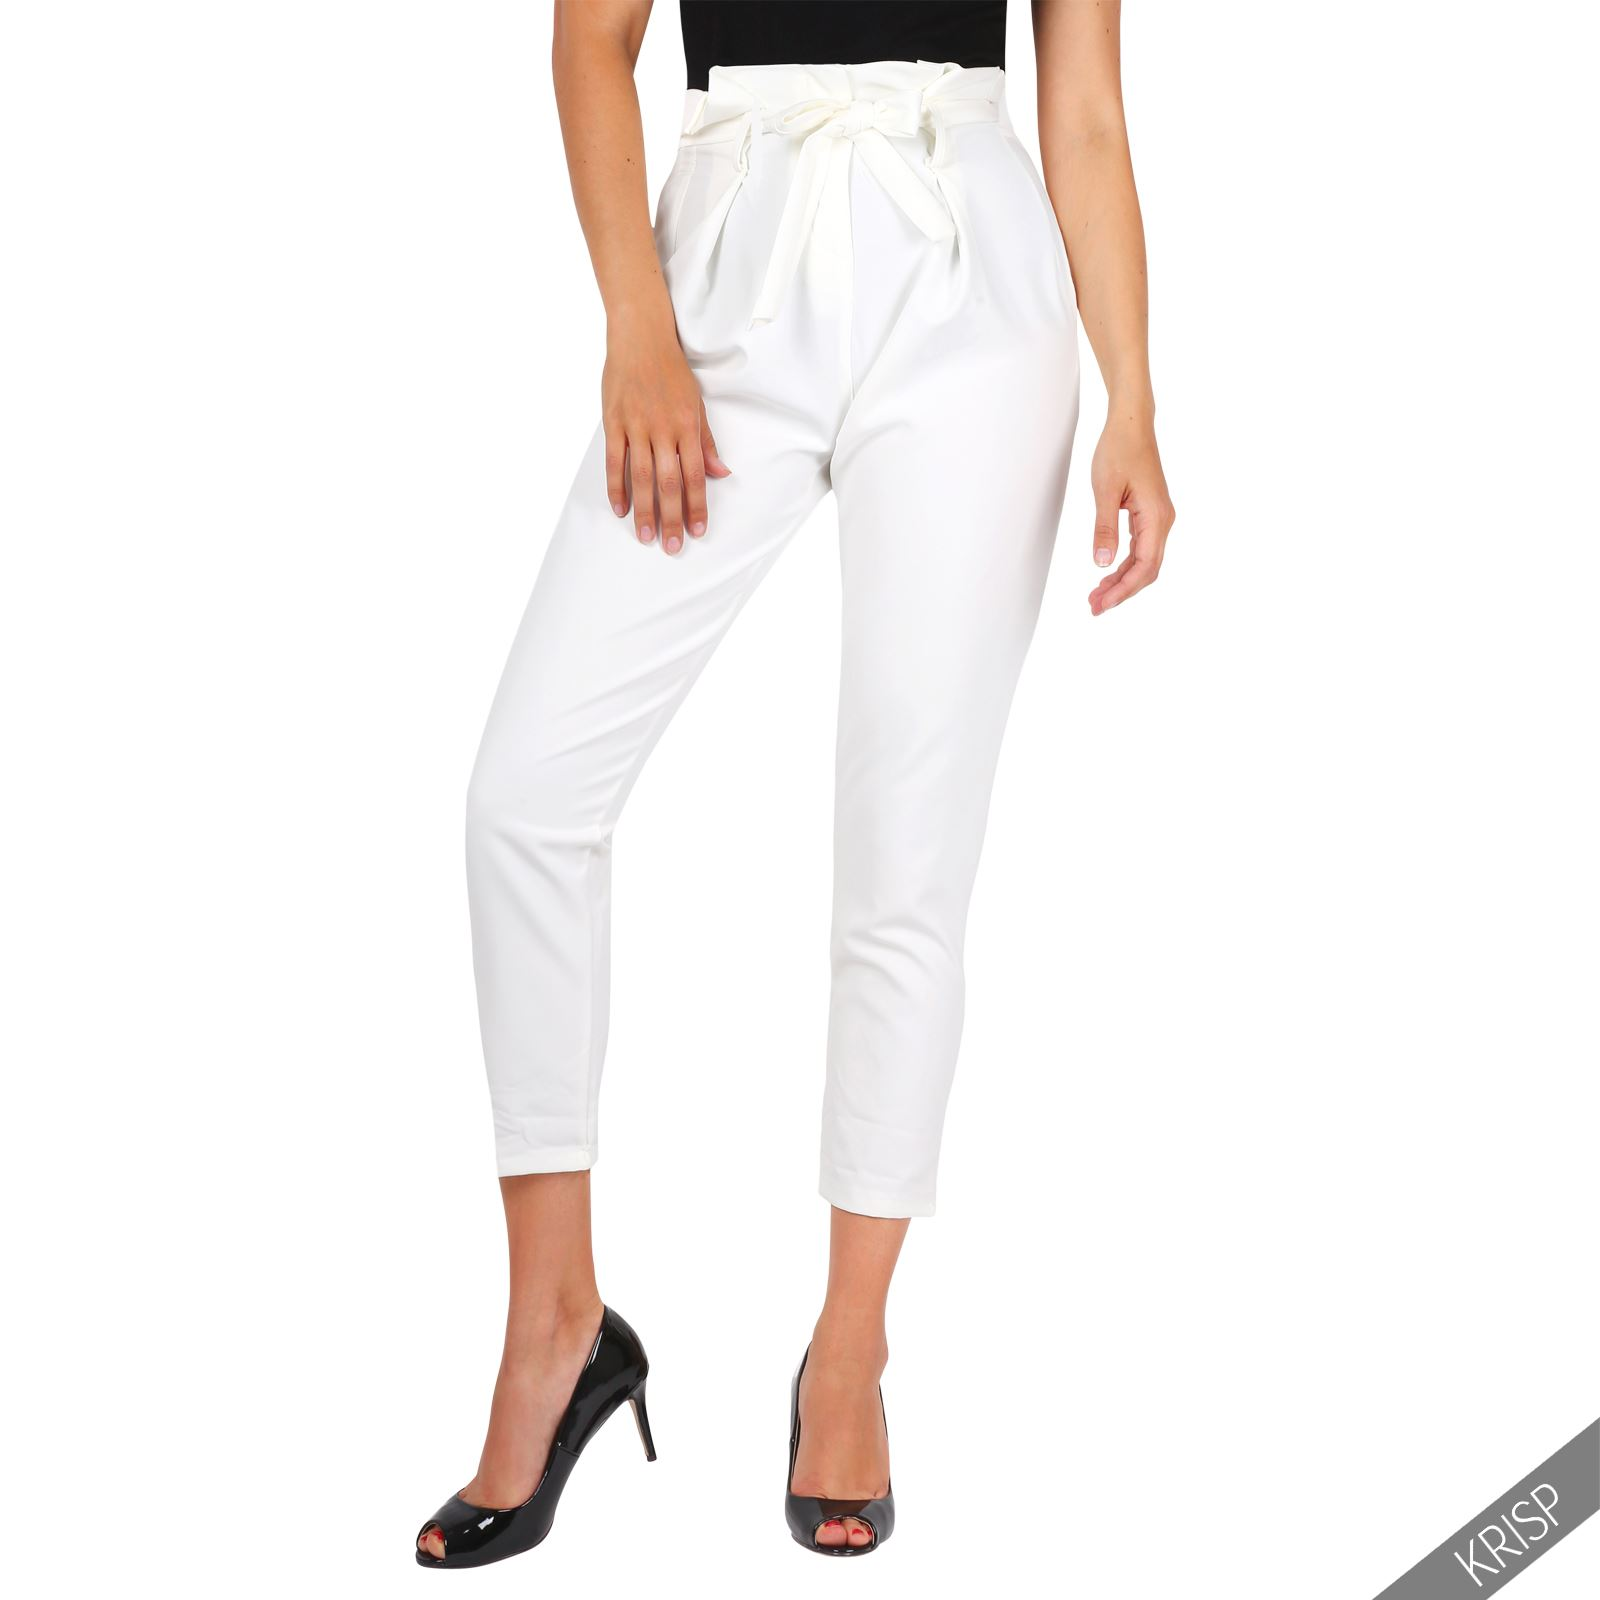 Women Formal Business Ruffle High Waist Pencil Trousers ...